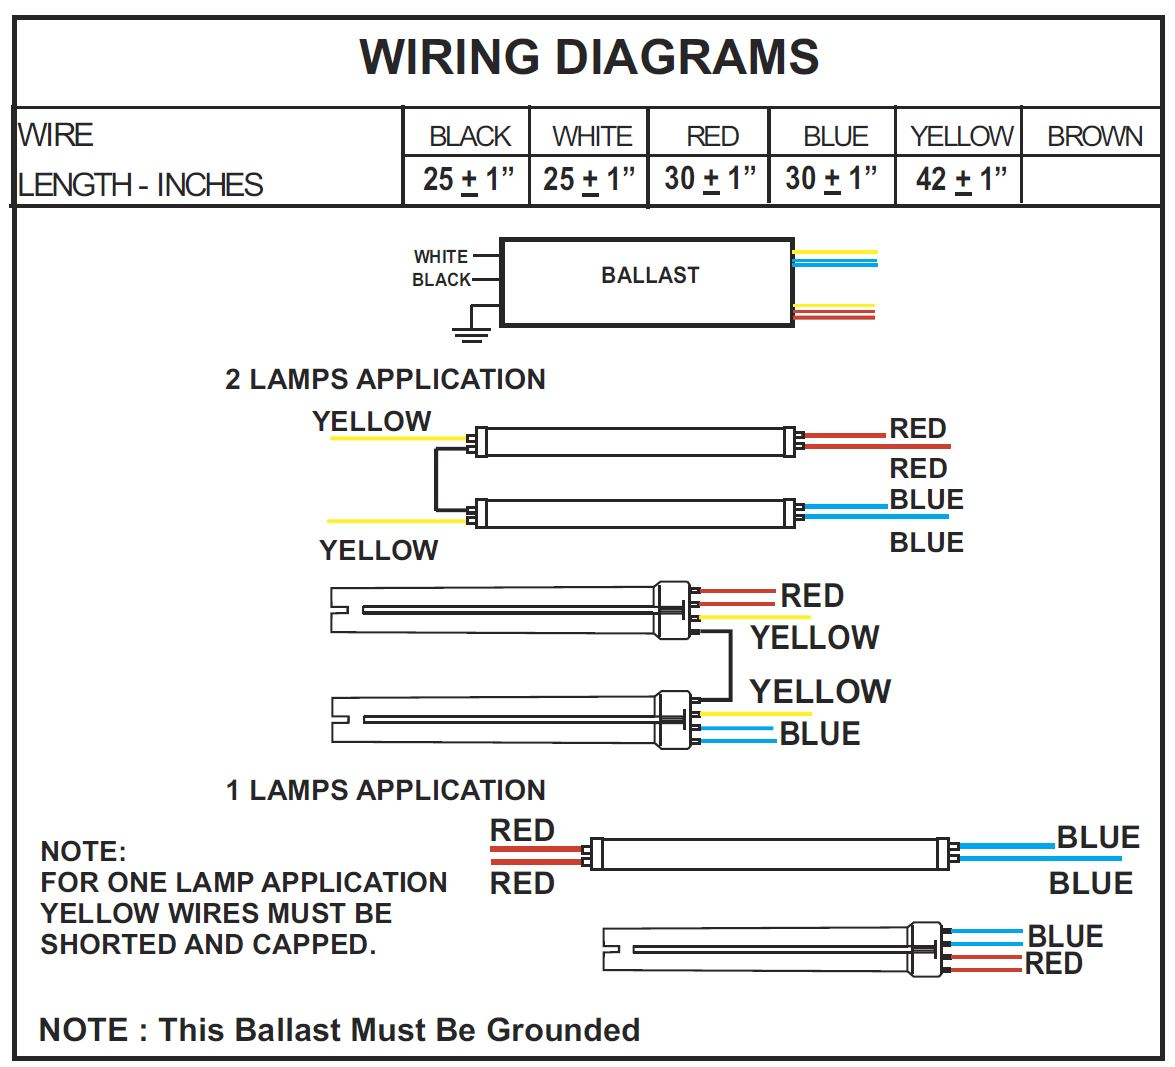 [QMVU_8575]  EFCD17 Diagram For Wiring A Light Bulb Socket Lamp | Wiring Library | T5 Light Socket Wiring Diagram |  | Wiring Library